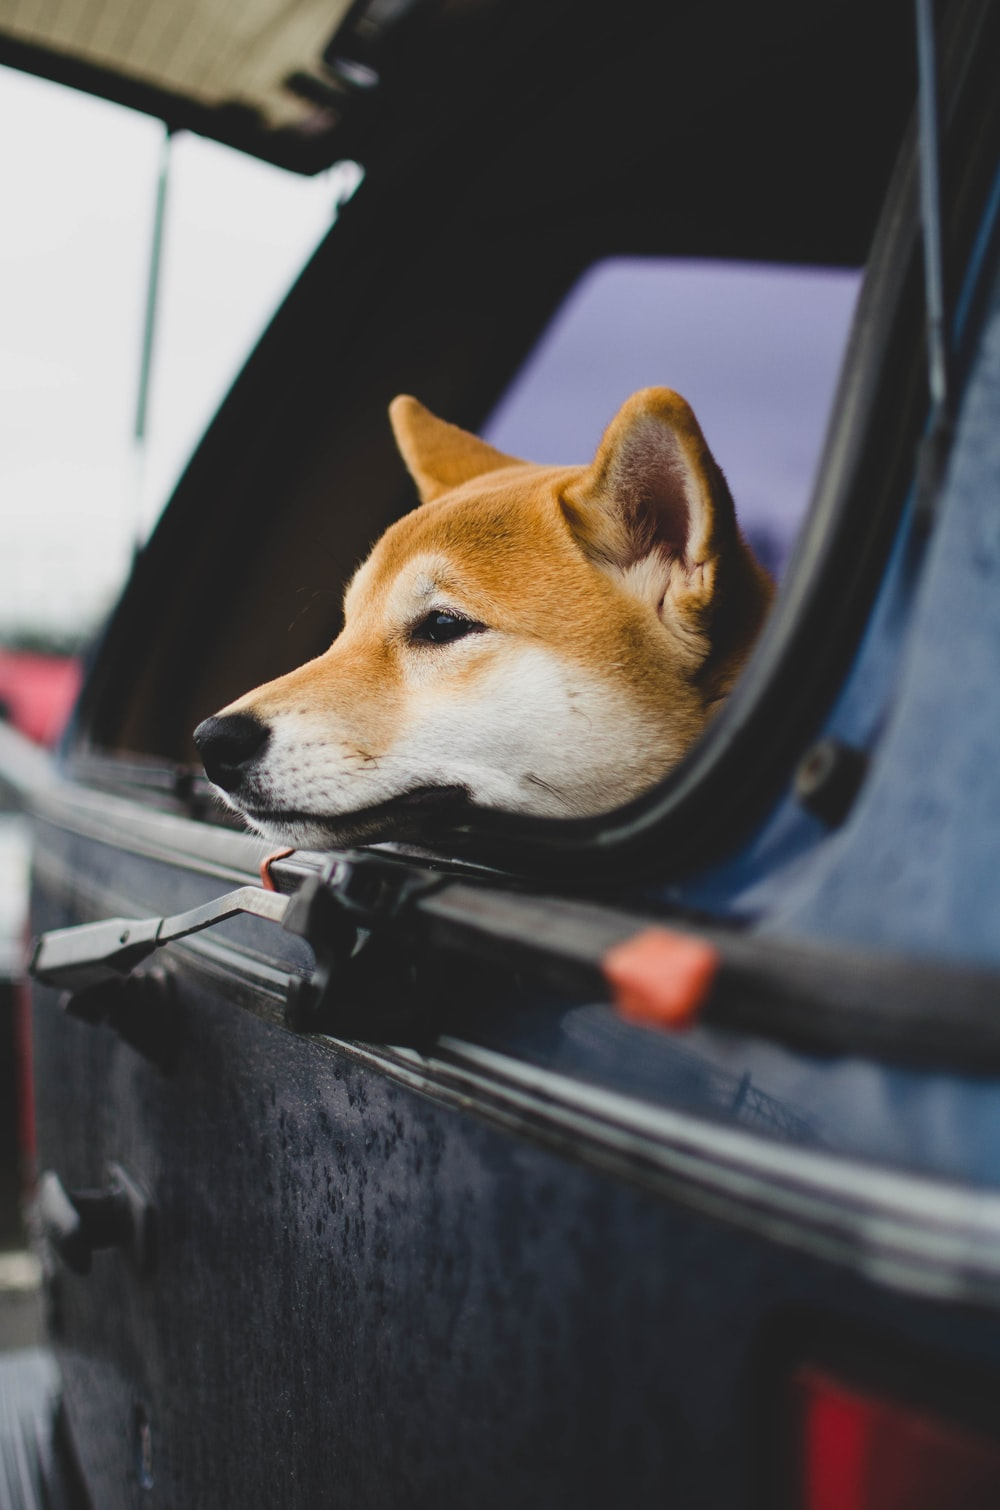 brown and white short coated dog in car